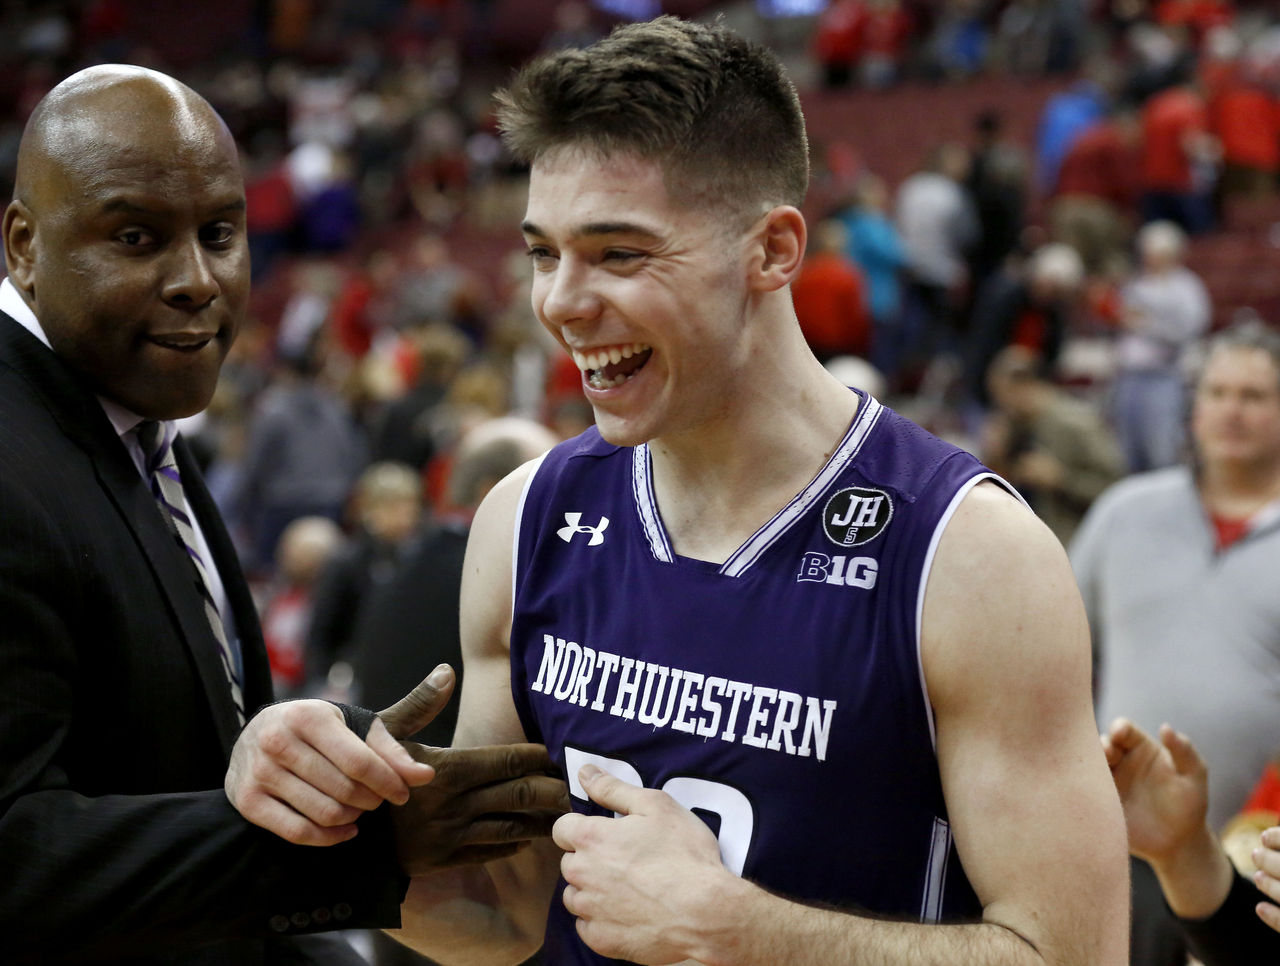 Cropped 2017 01 22t202048z 587135675 nocid rtrmadp 3 ncaa basketball northwestern at ohio state